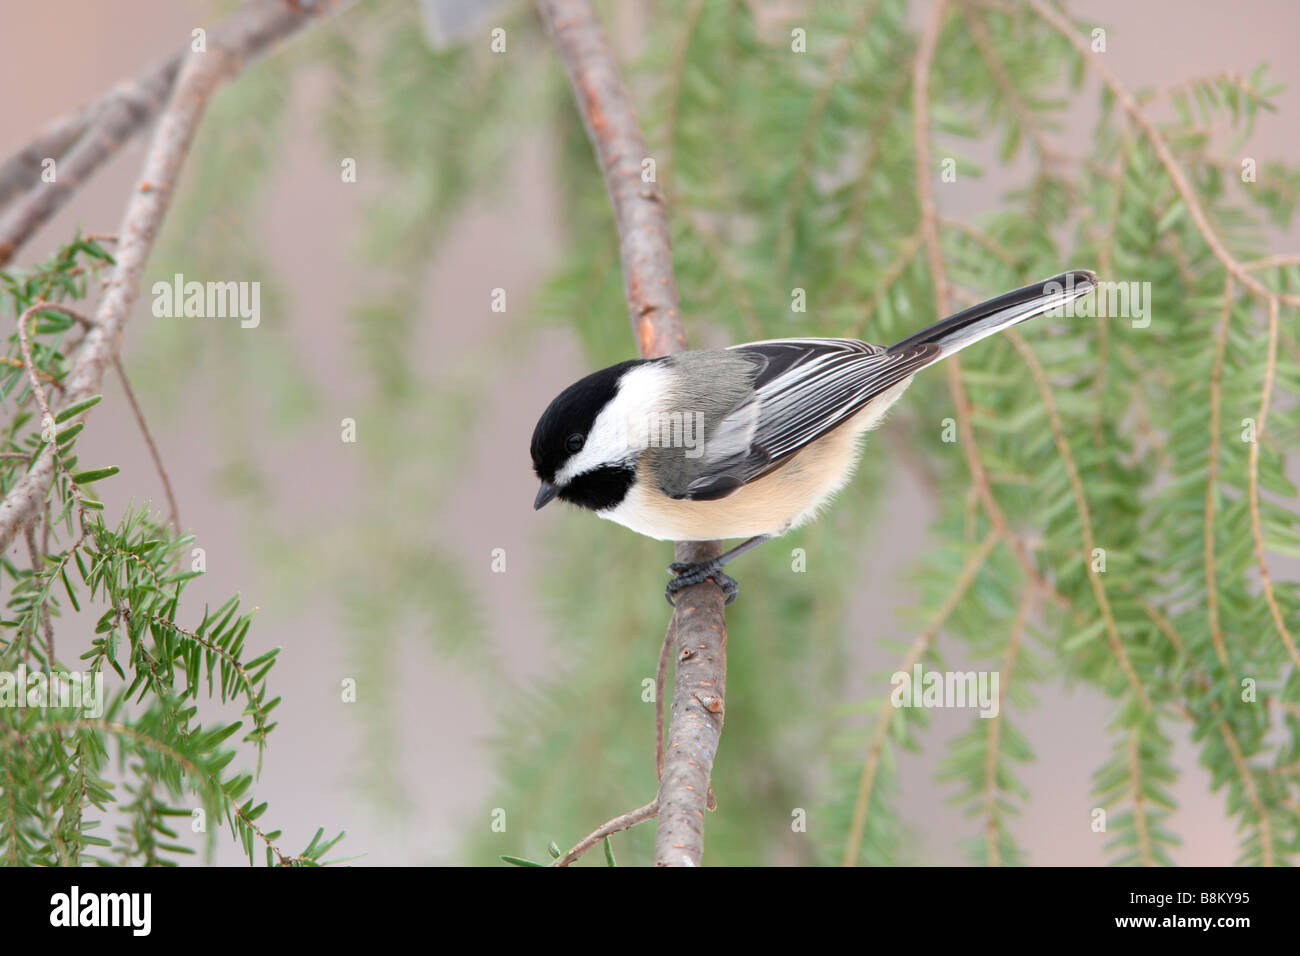 Black capped Chickadee - Stock Image